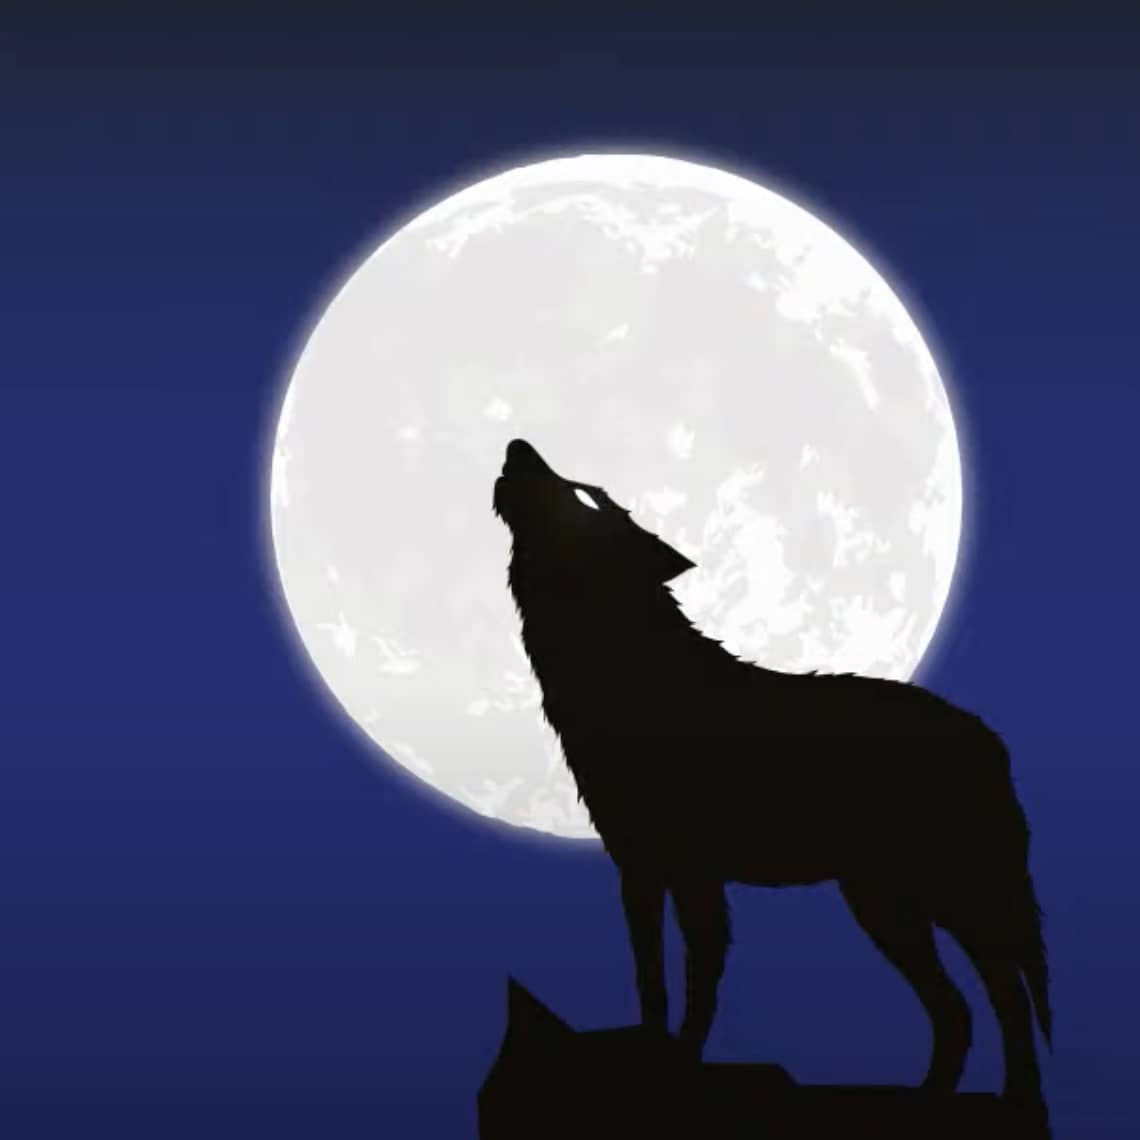 MacBite After Hours howling wolf logo.